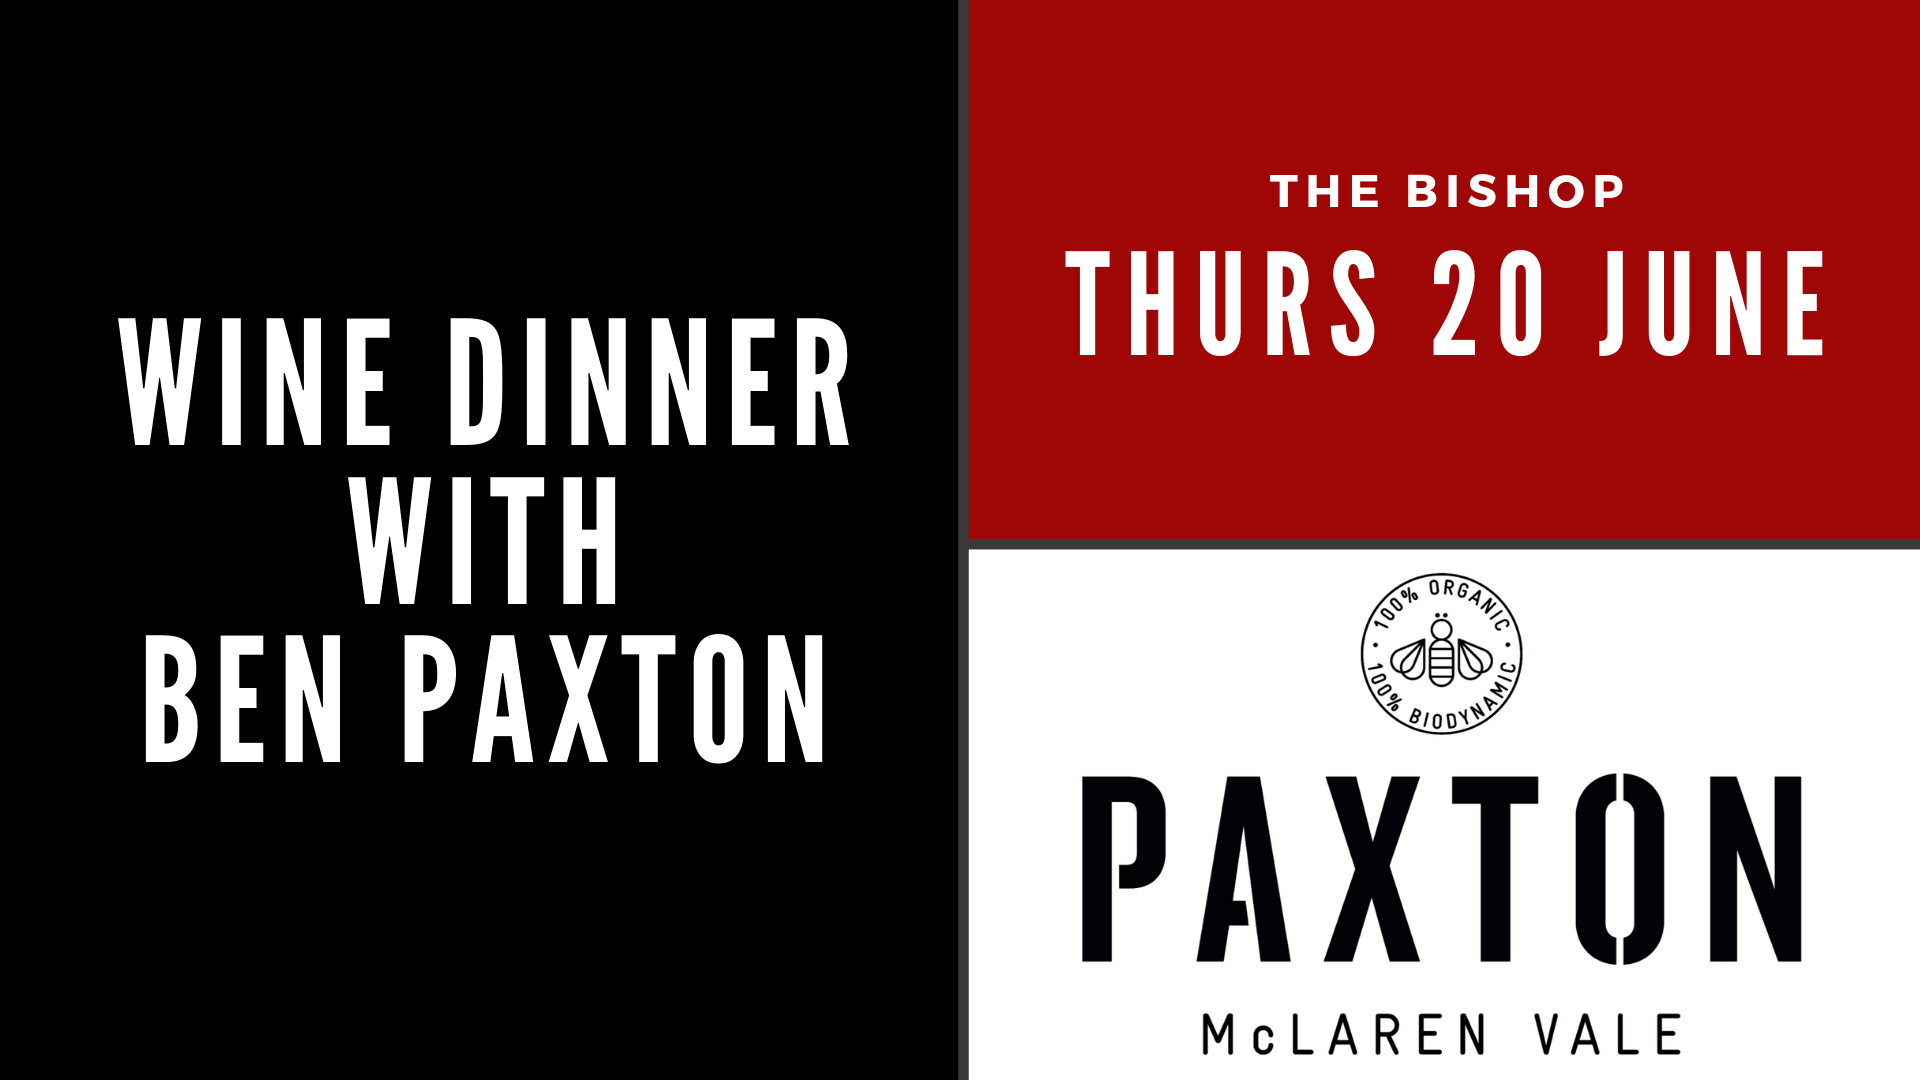 Paxton-dinner-event